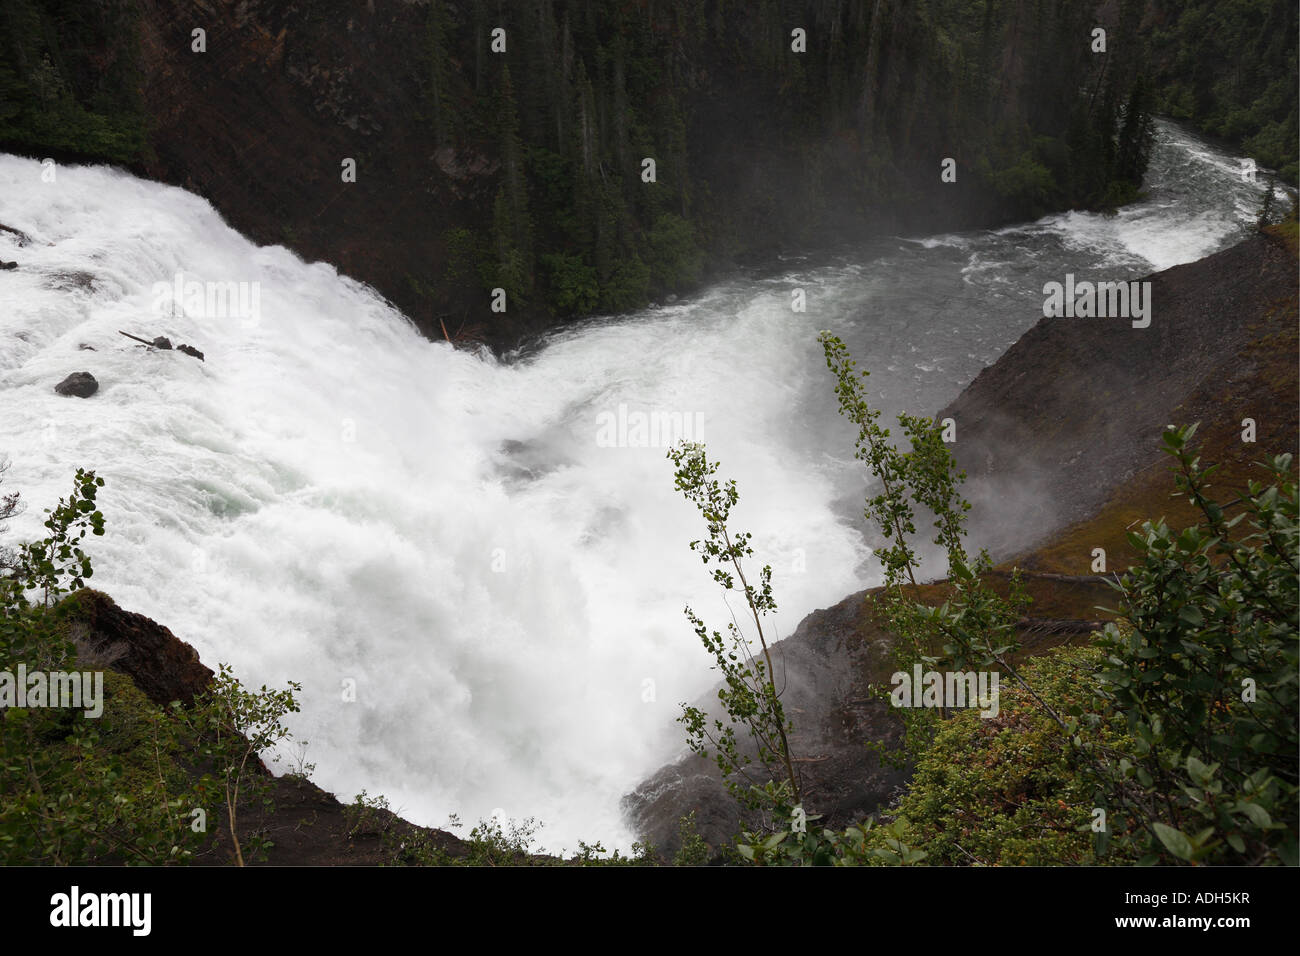 Iskut River Stock Photos & Iskut River Stock Images - Alamy